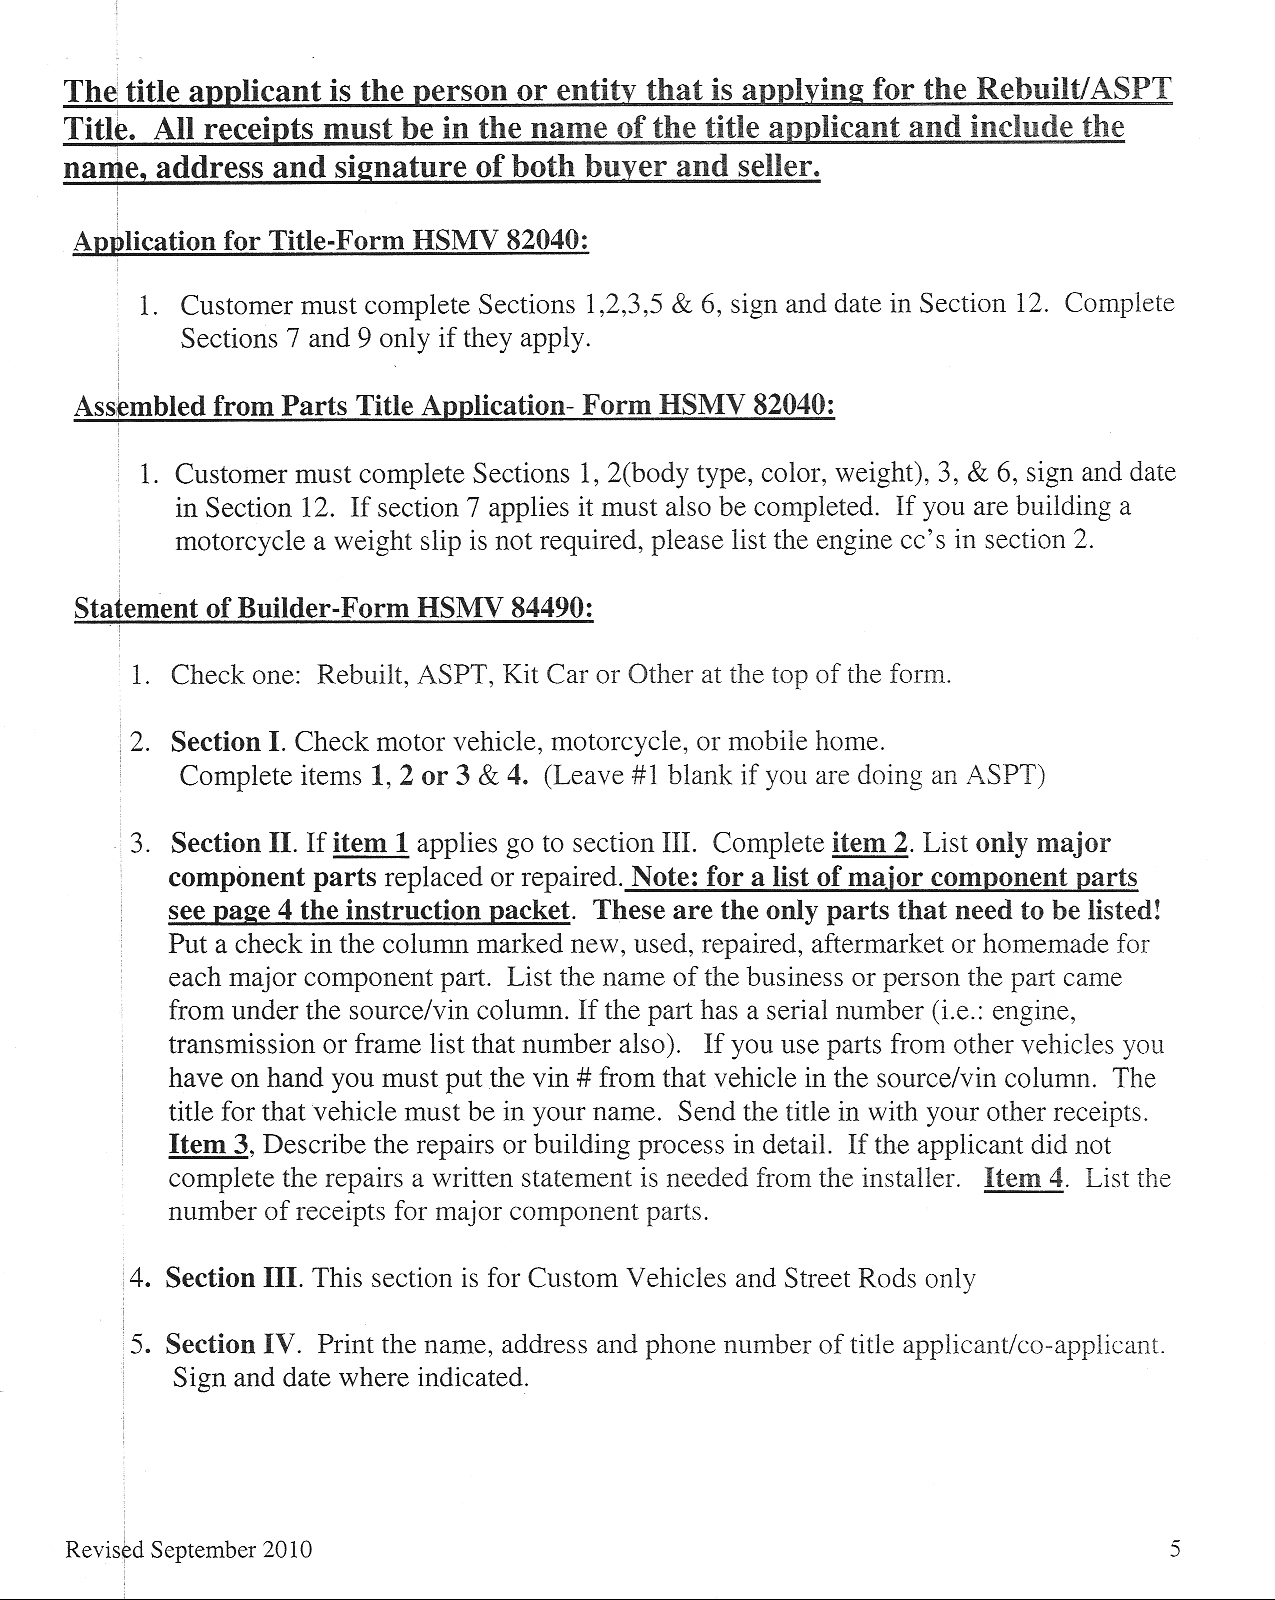 Florida DMV special construction pamphlet two, page five